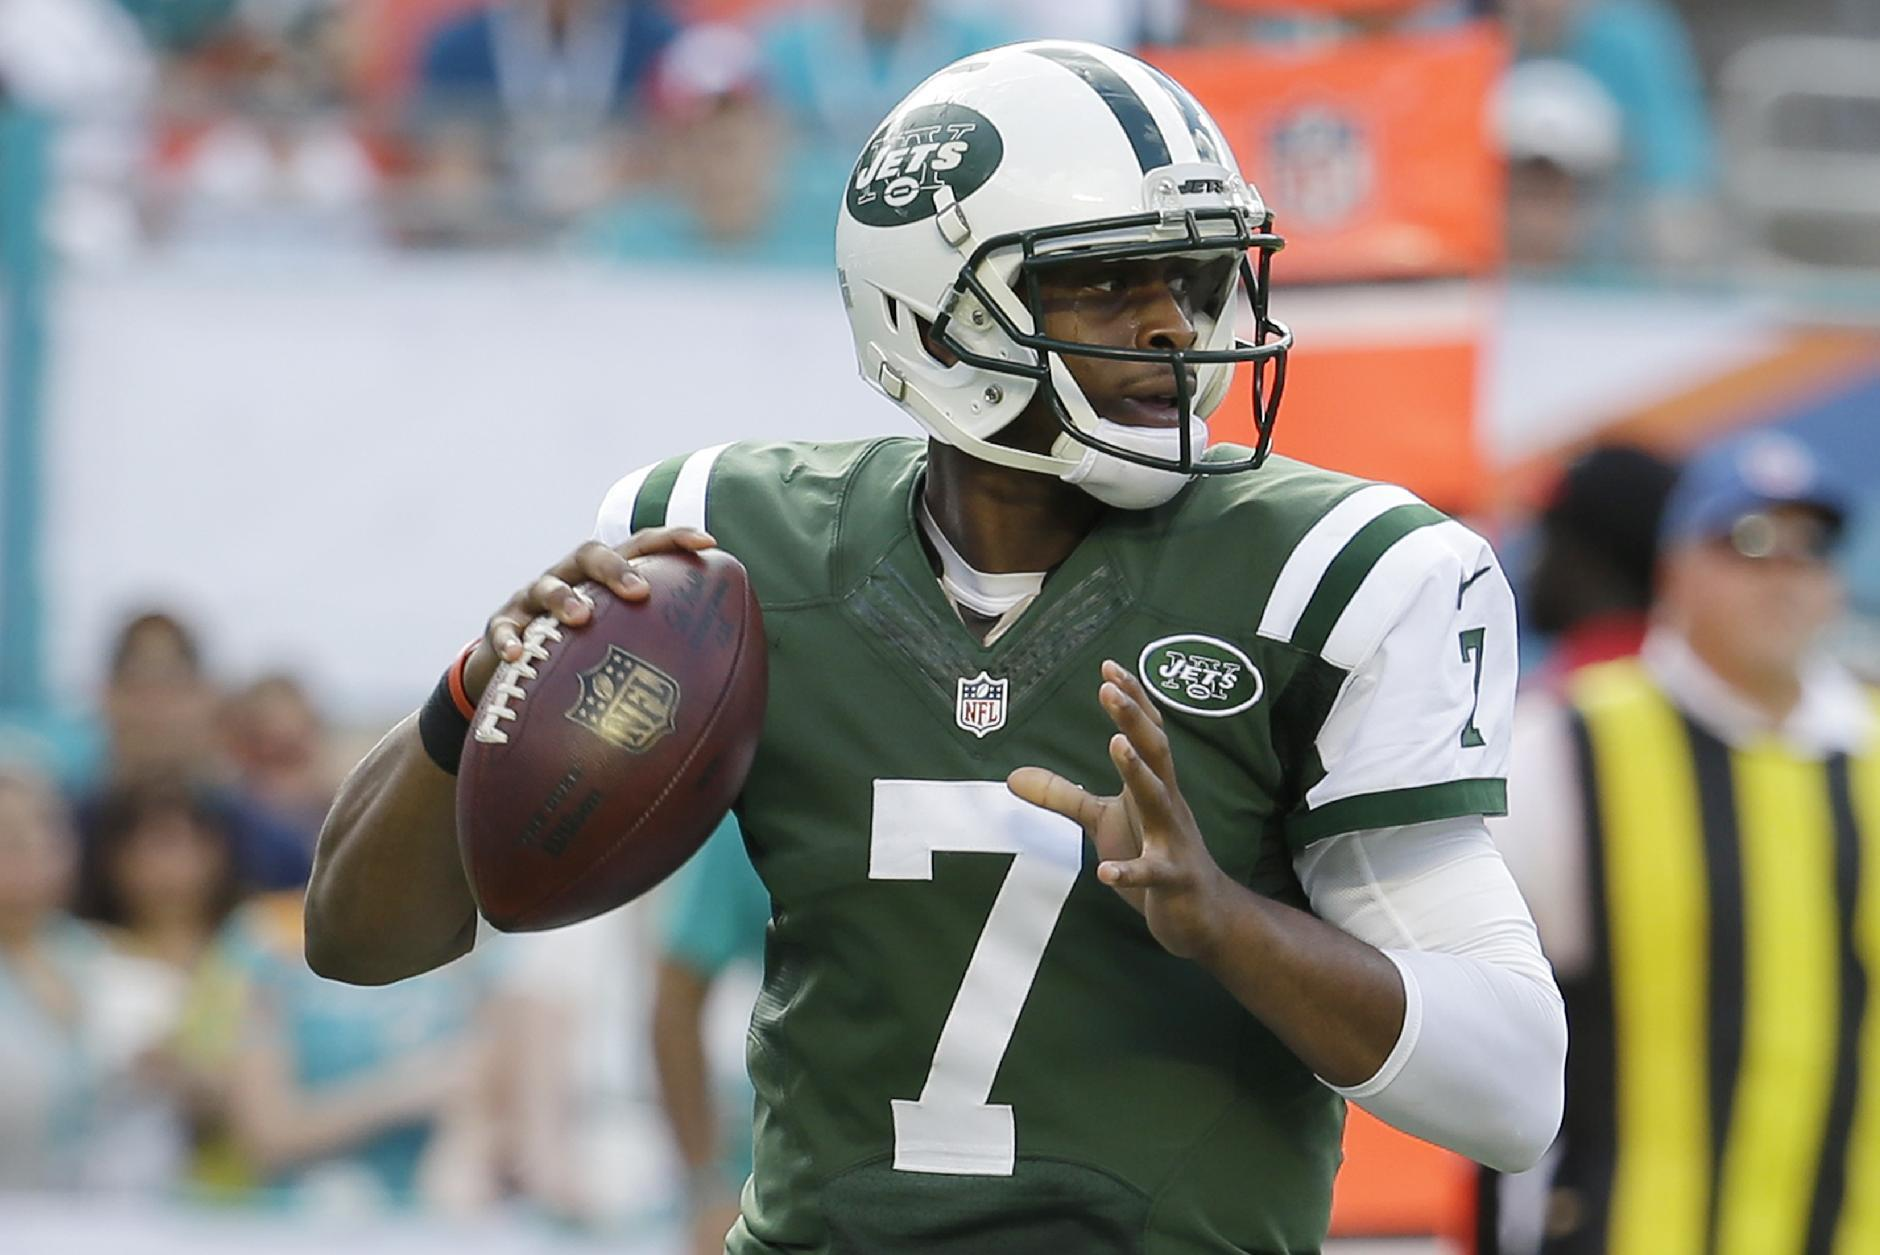 Jets OC Chan Gailey says Geno Smith is team's starting QB